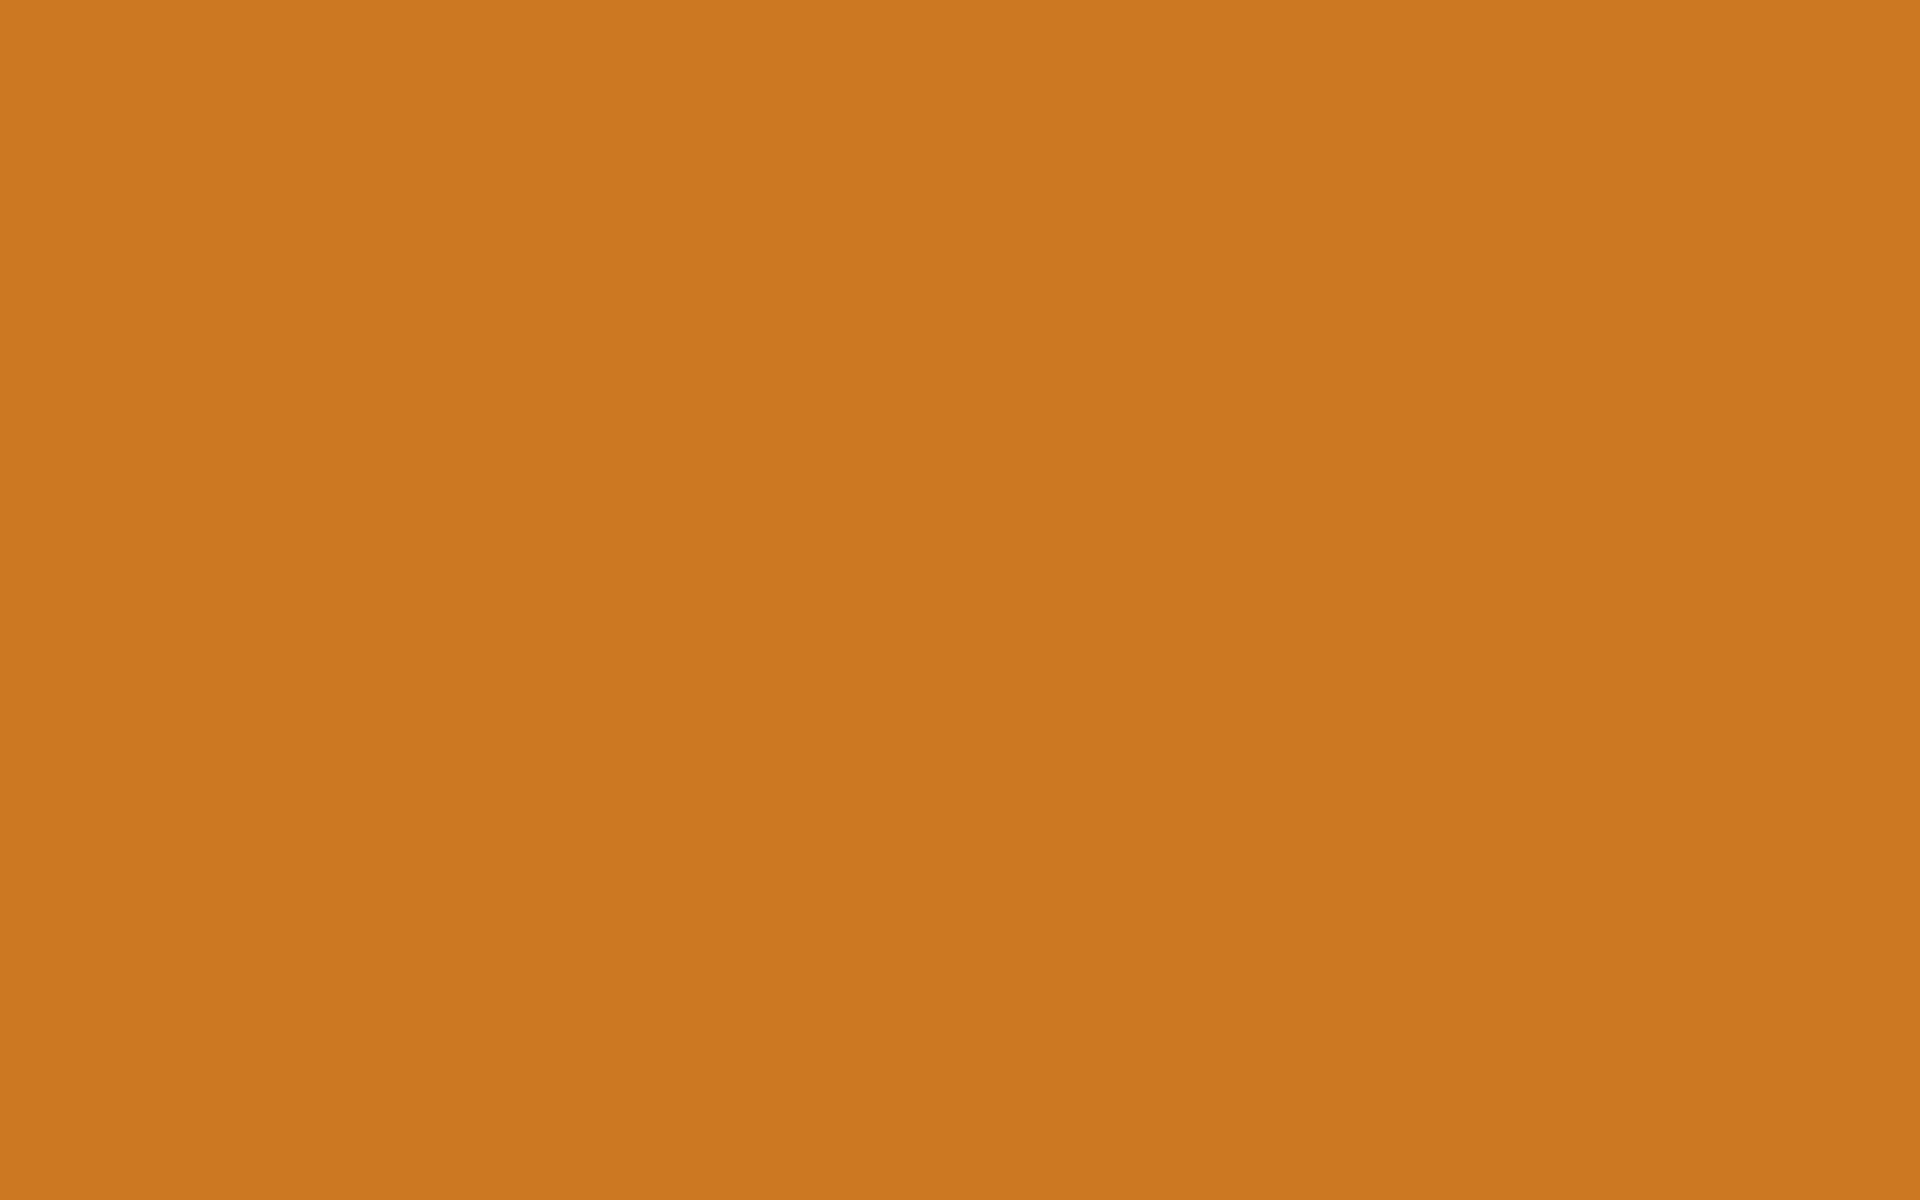 1920x1200 Ochre Solid Color Background